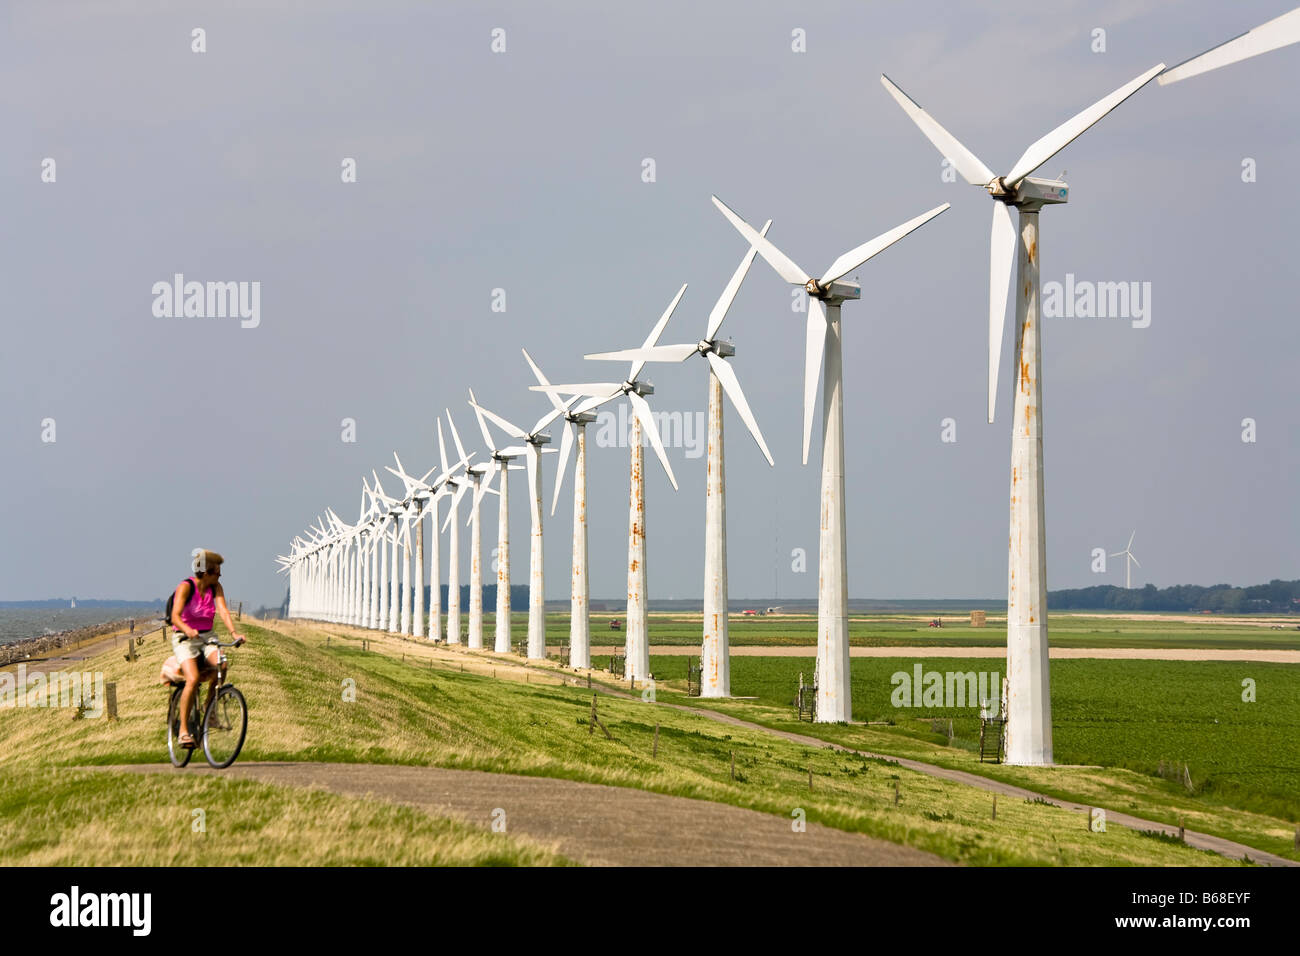 Wind farm turbines on dyke Essent windpark Westermeerdijk Netherlands - Stock Image